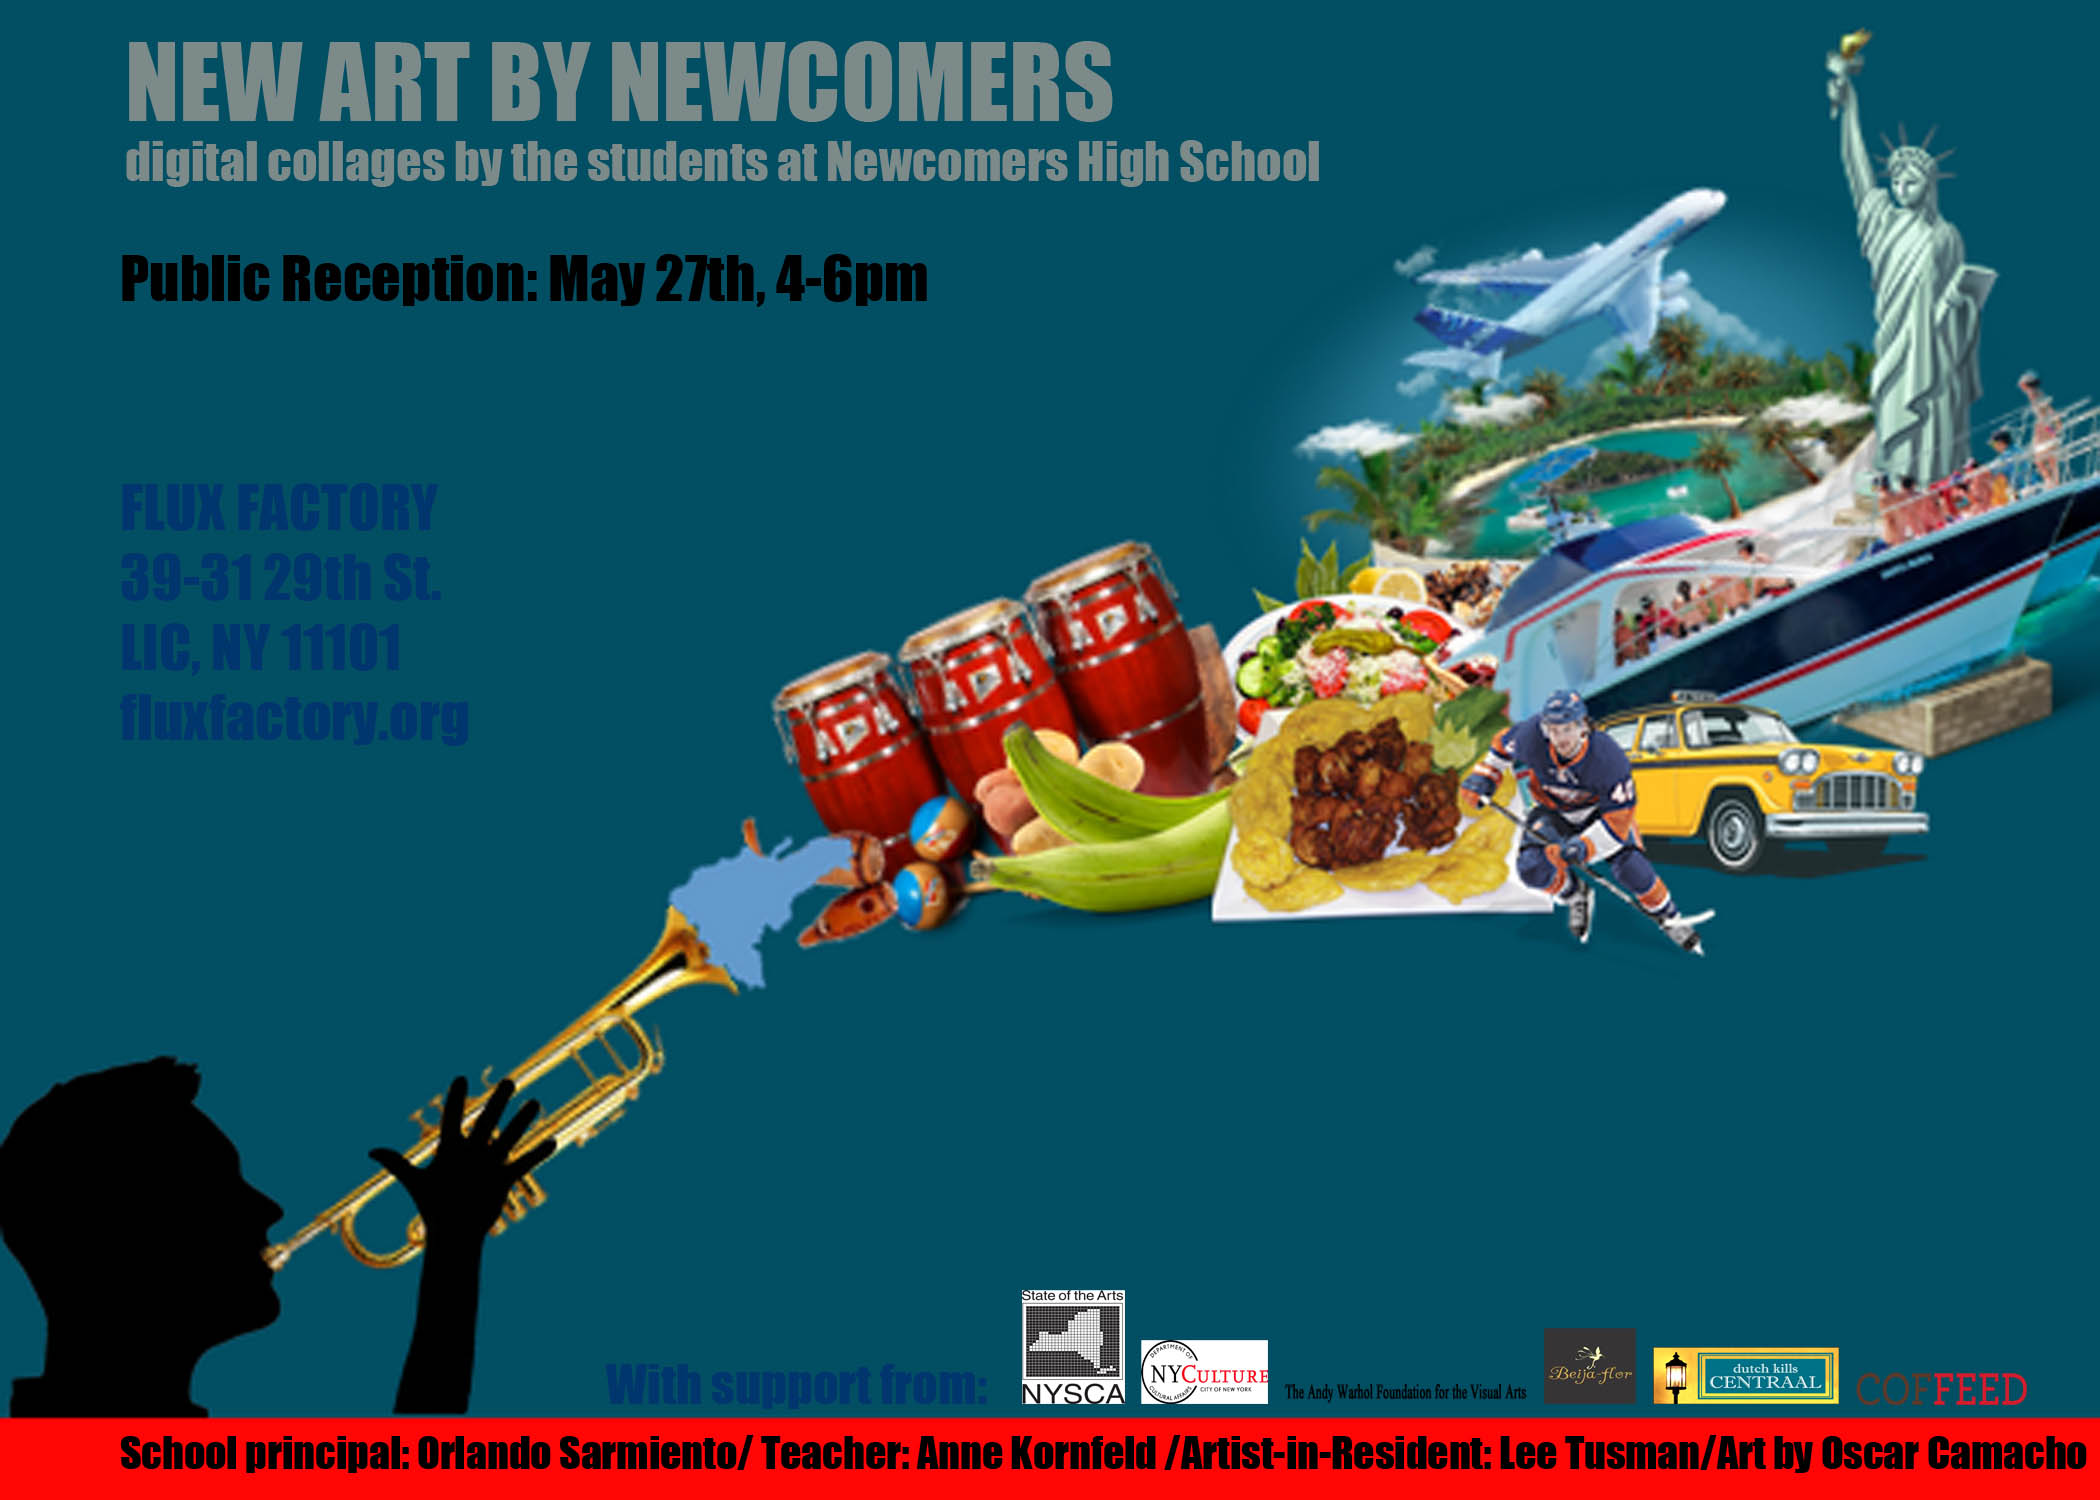 New Art By NEWCOMERS Reception